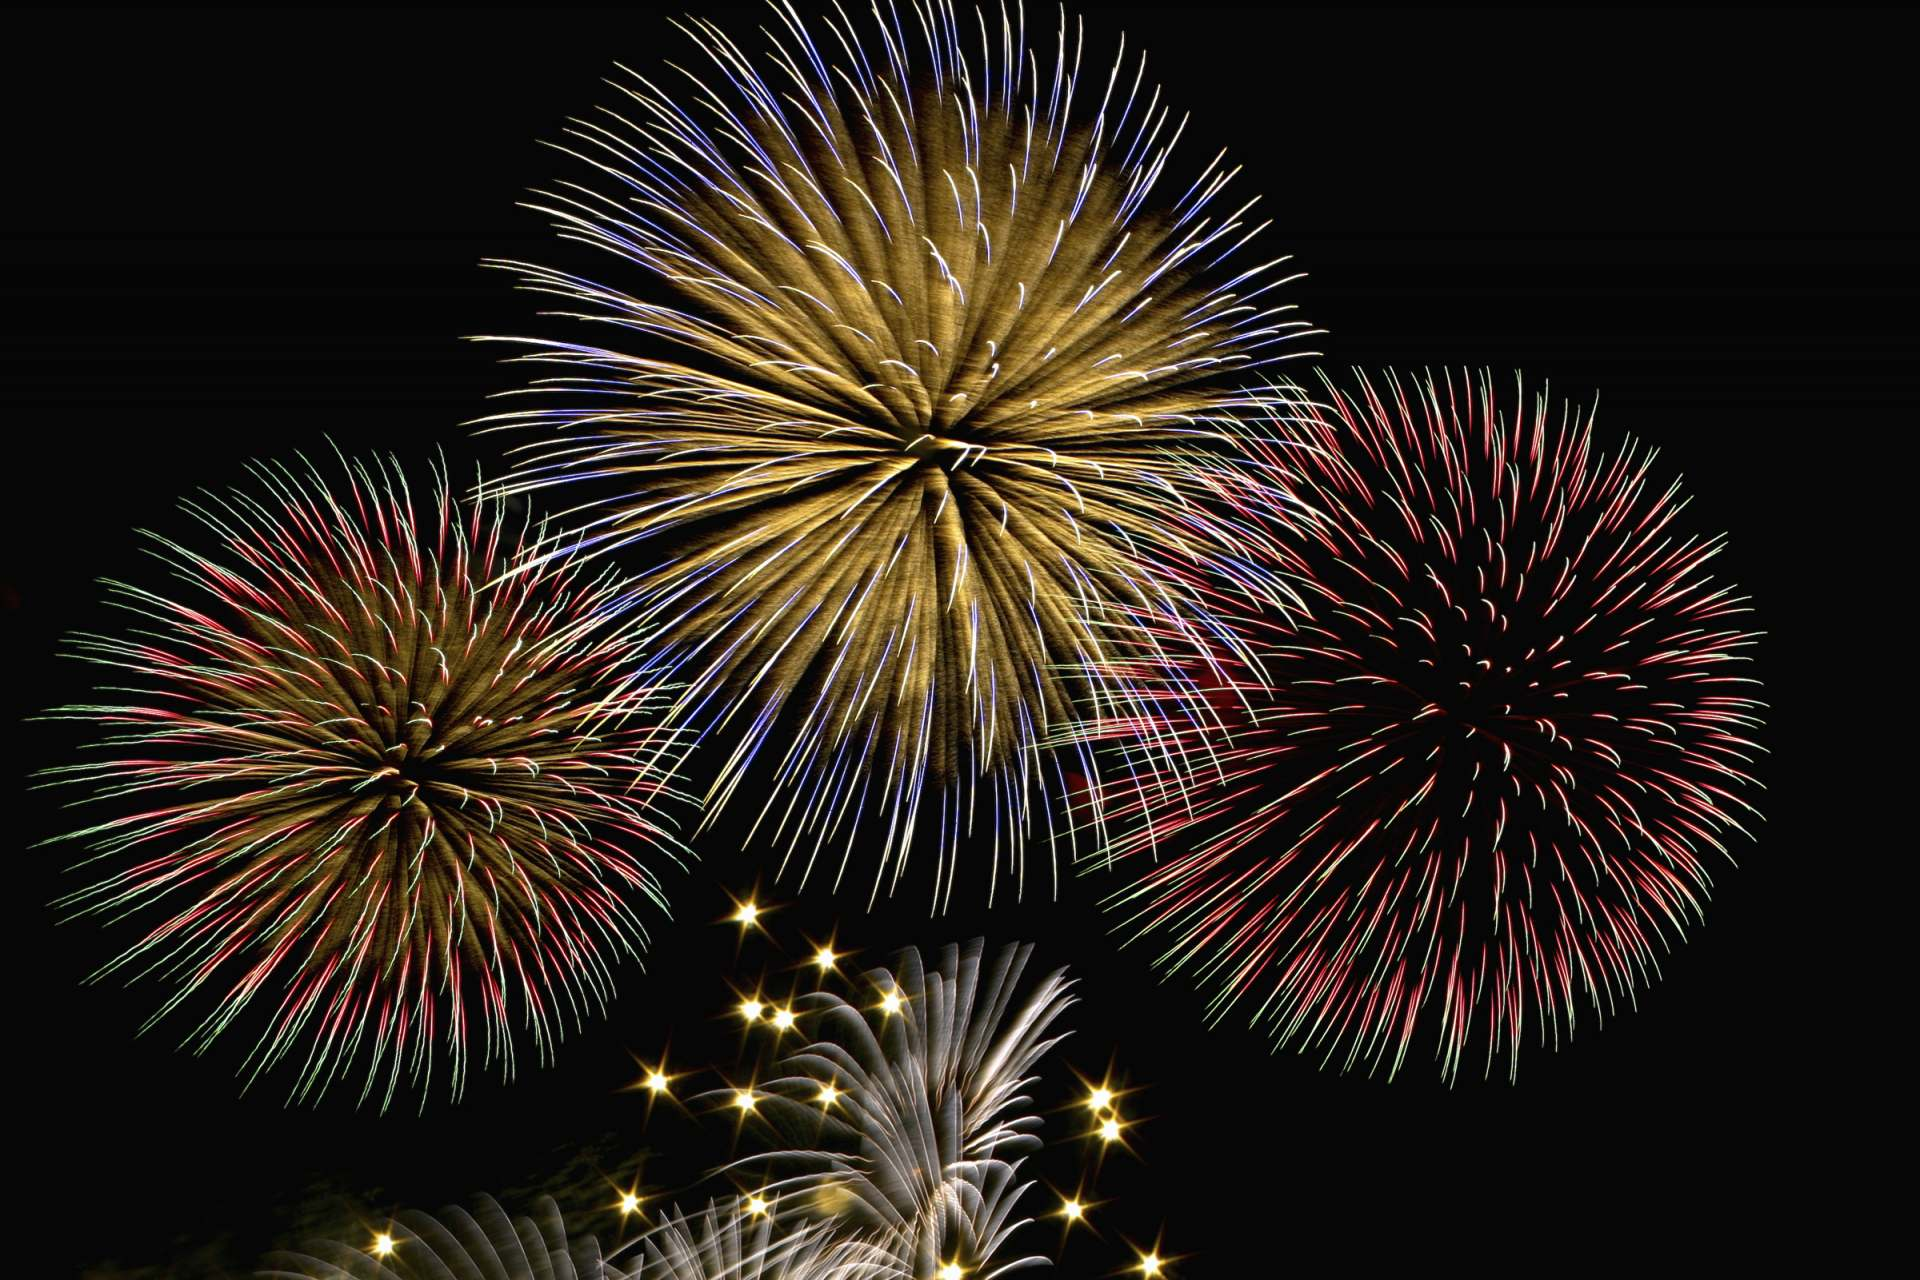 Make lasting memories of New Year's Eve by watching a beautiful fireworks display!